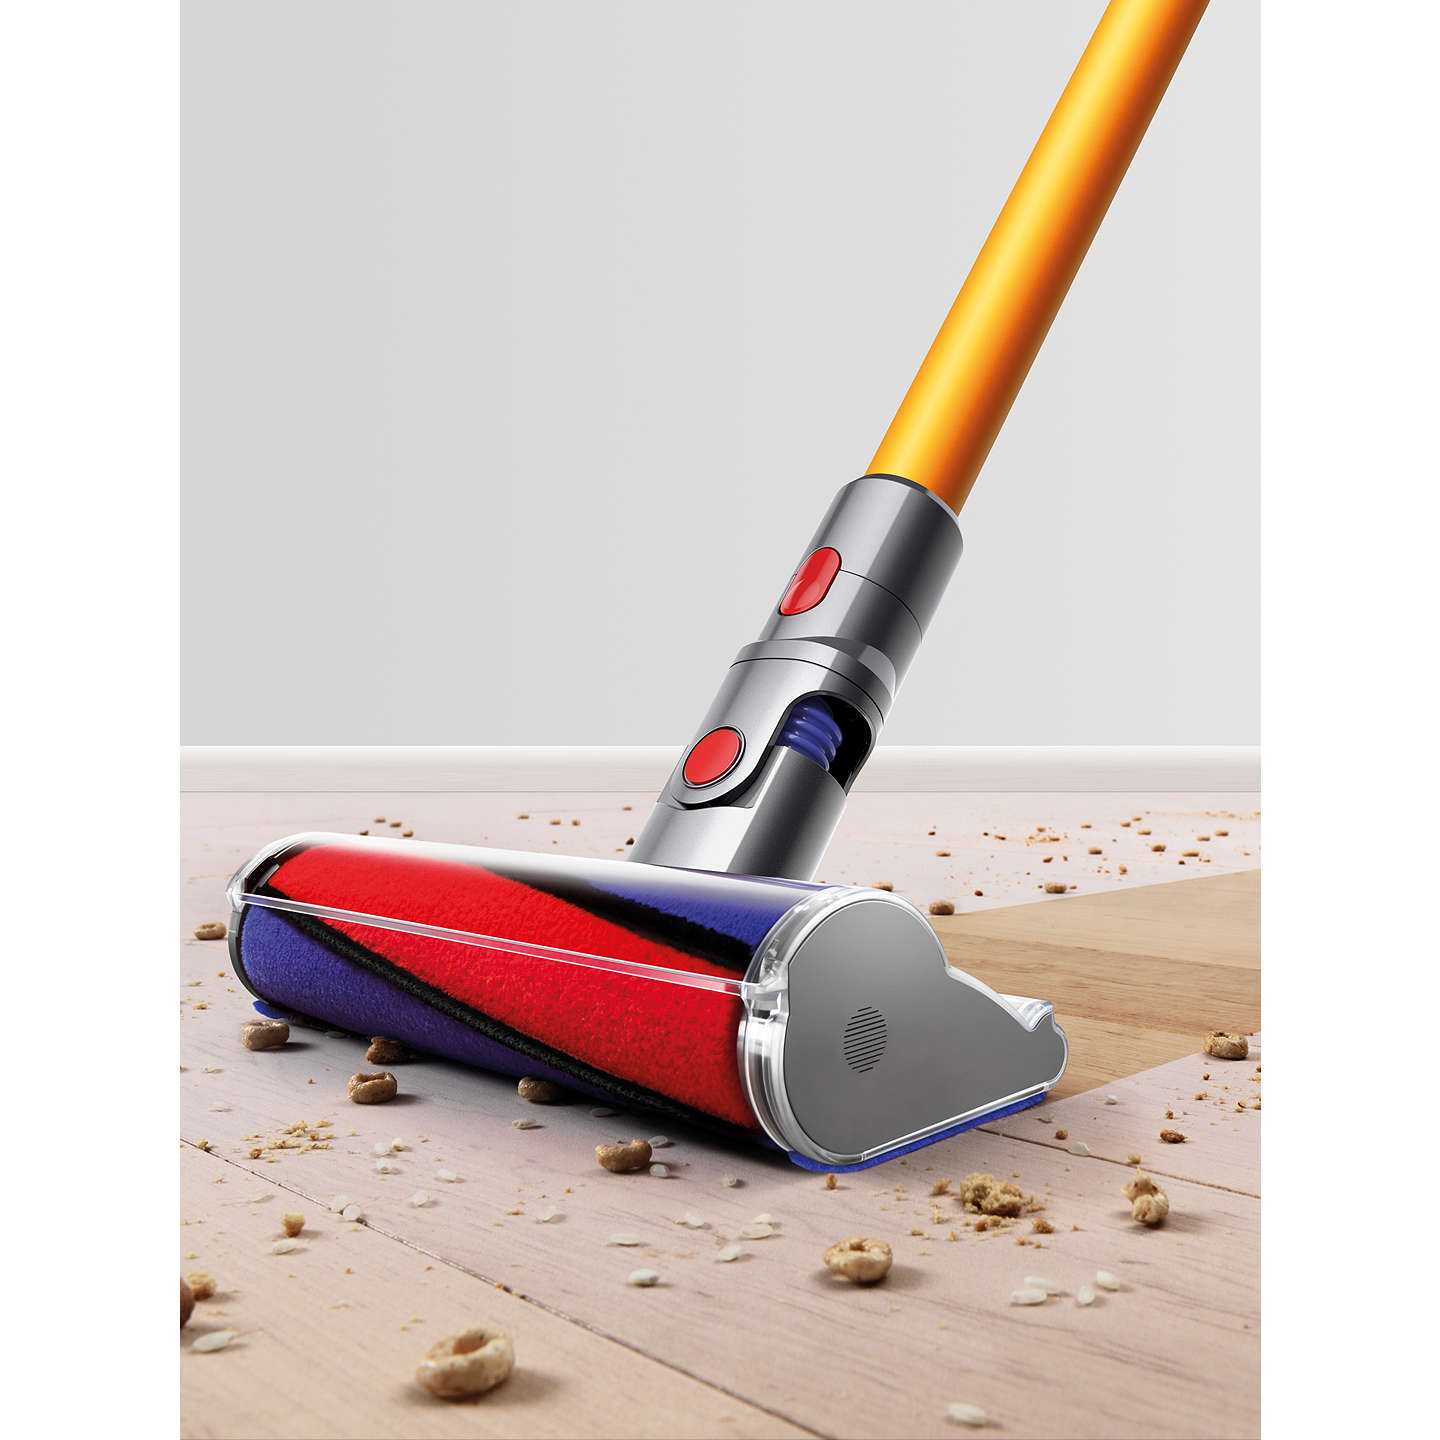 dyson v8 absolute cordless vacuum cleaner at john lewis. Black Bedroom Furniture Sets. Home Design Ideas